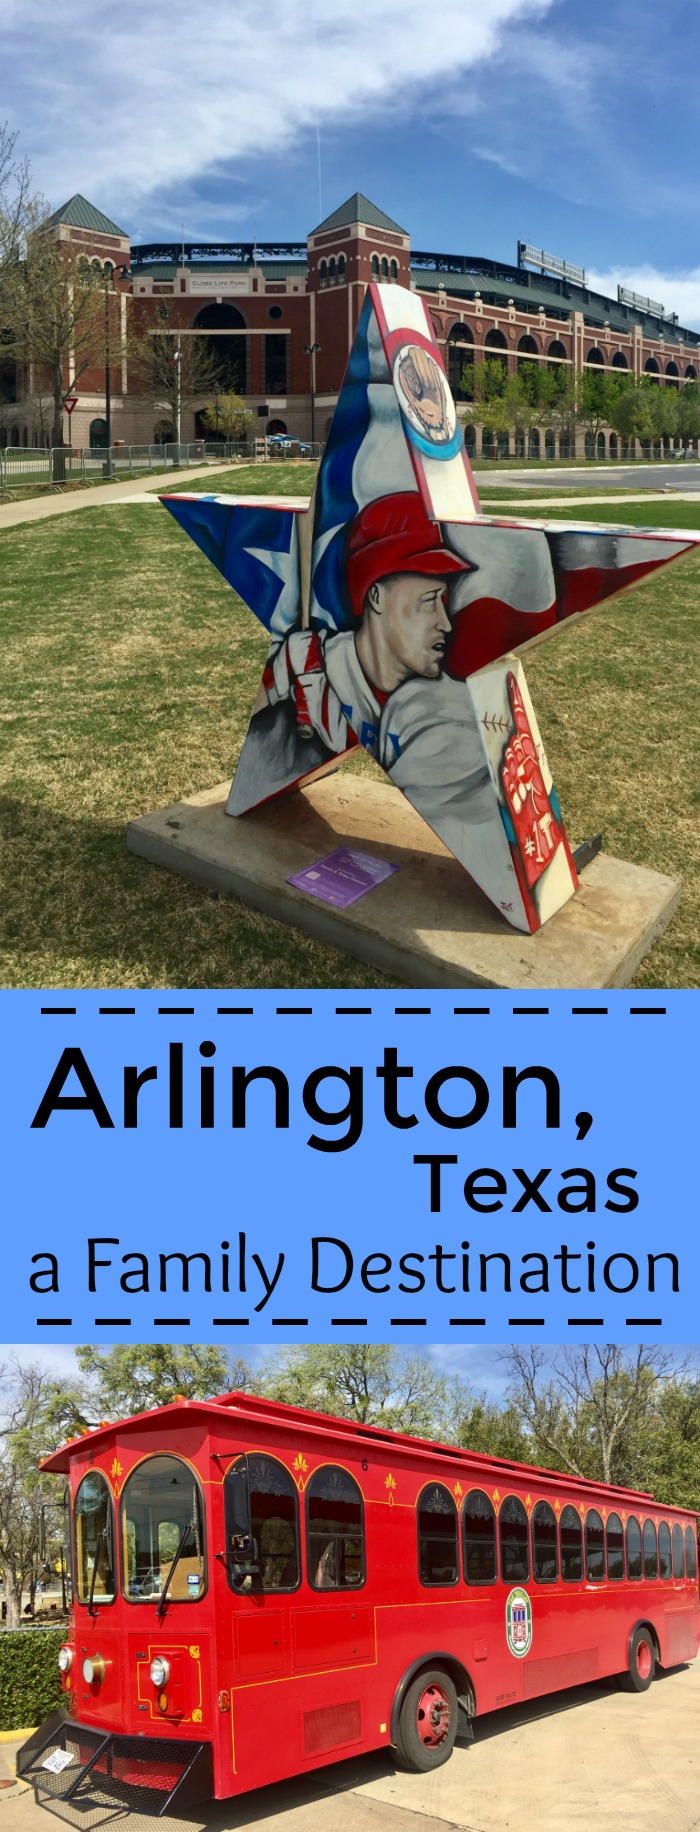 Arlington Texas - a Family Destination